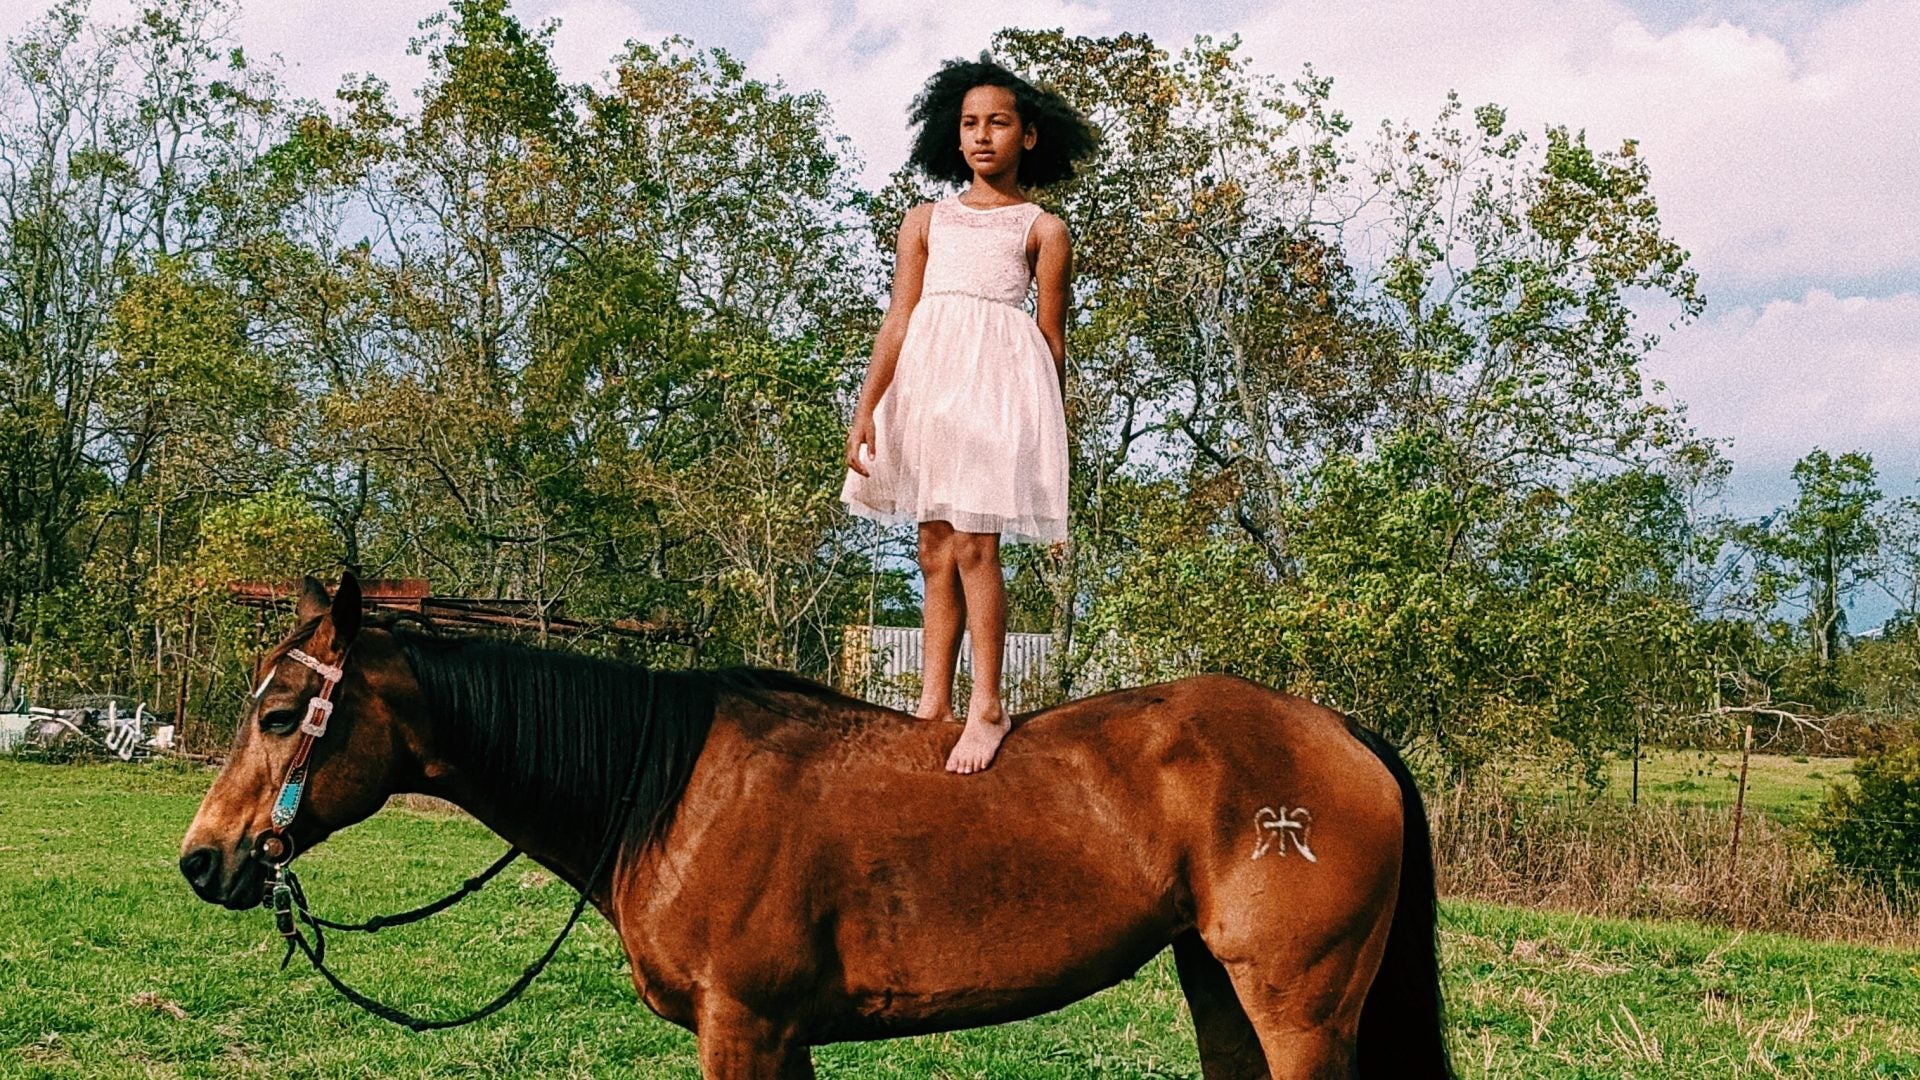 Kennedi Carter Partners With Google Creator Labs